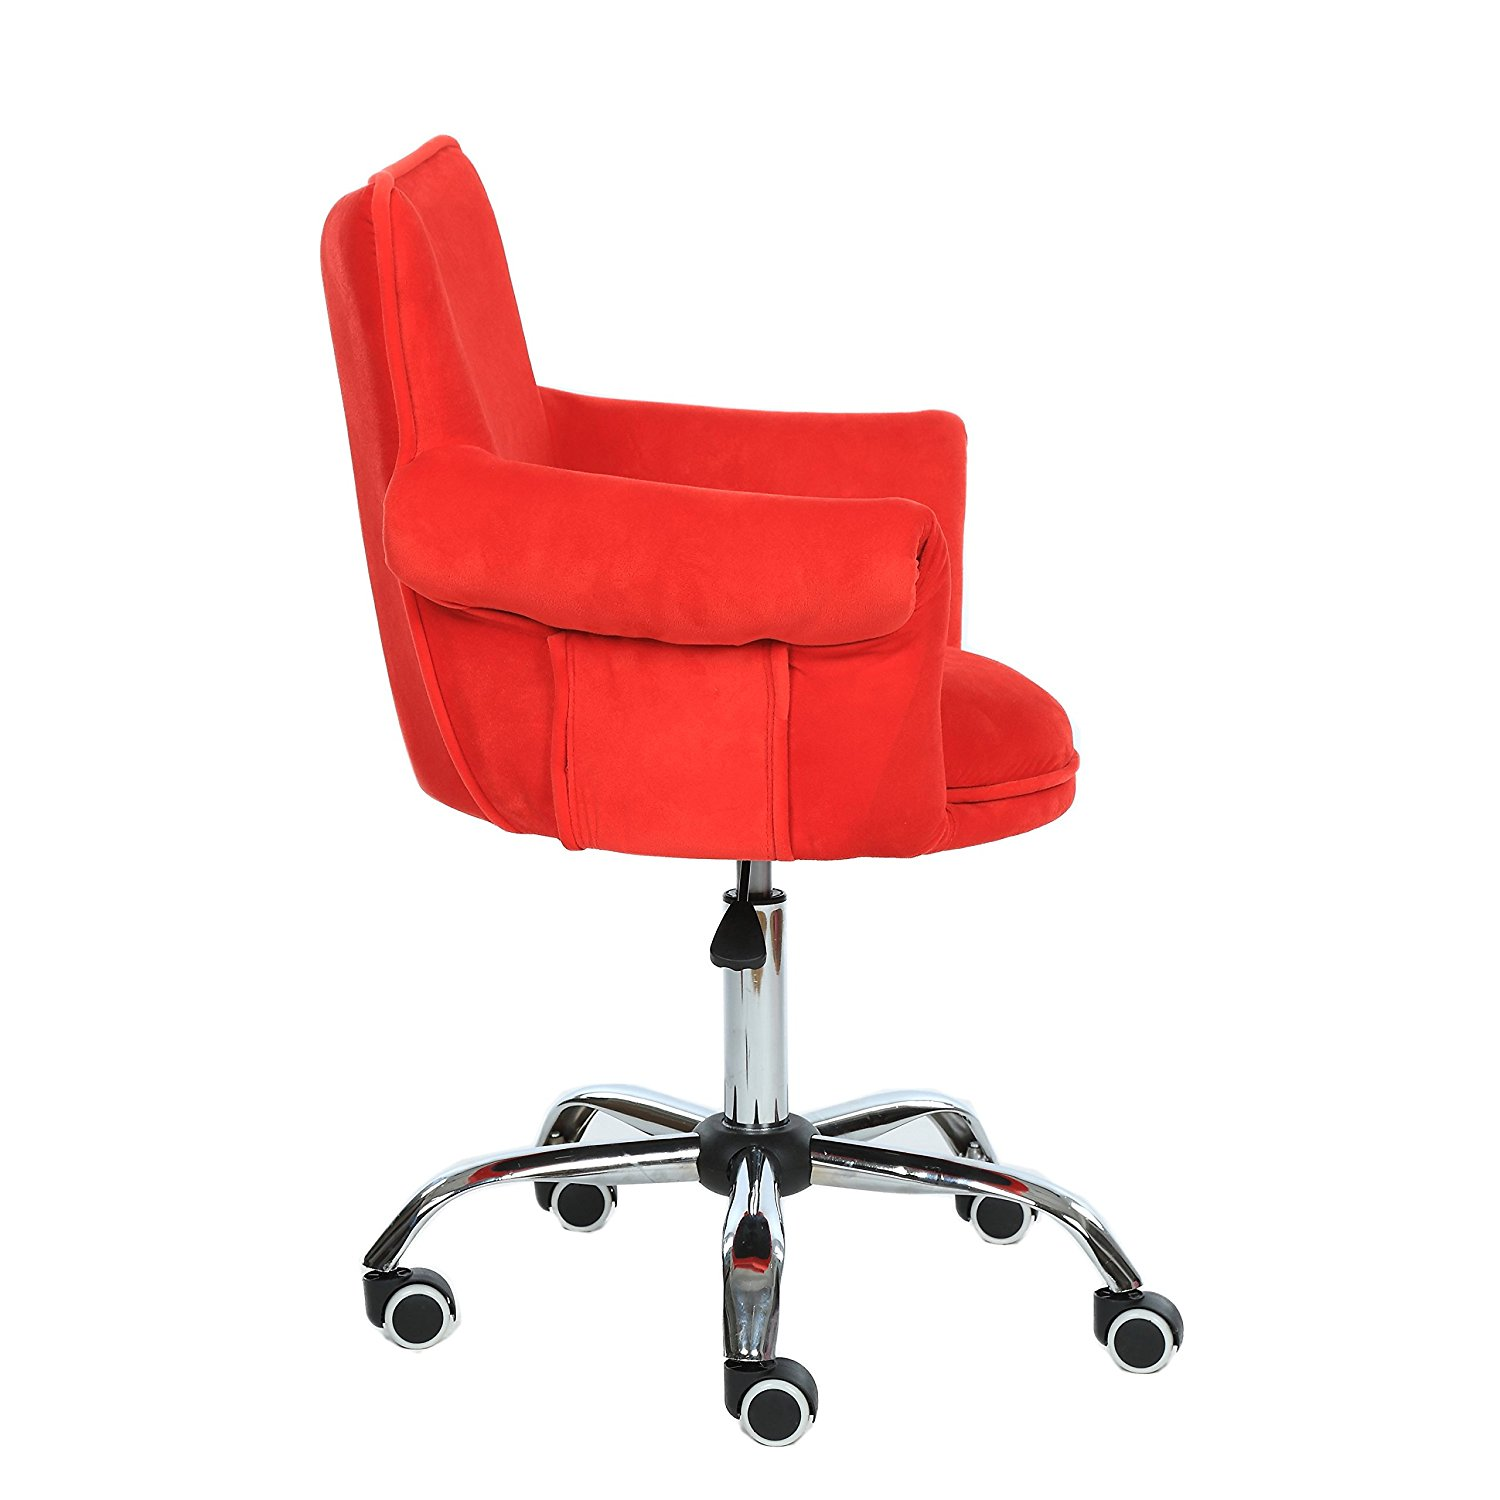 Red Desk Chair Magshion Deluxe Microfiber Office Desk Chair Bar Stool Beauty Nail Salon Spa Vanity Seat Red